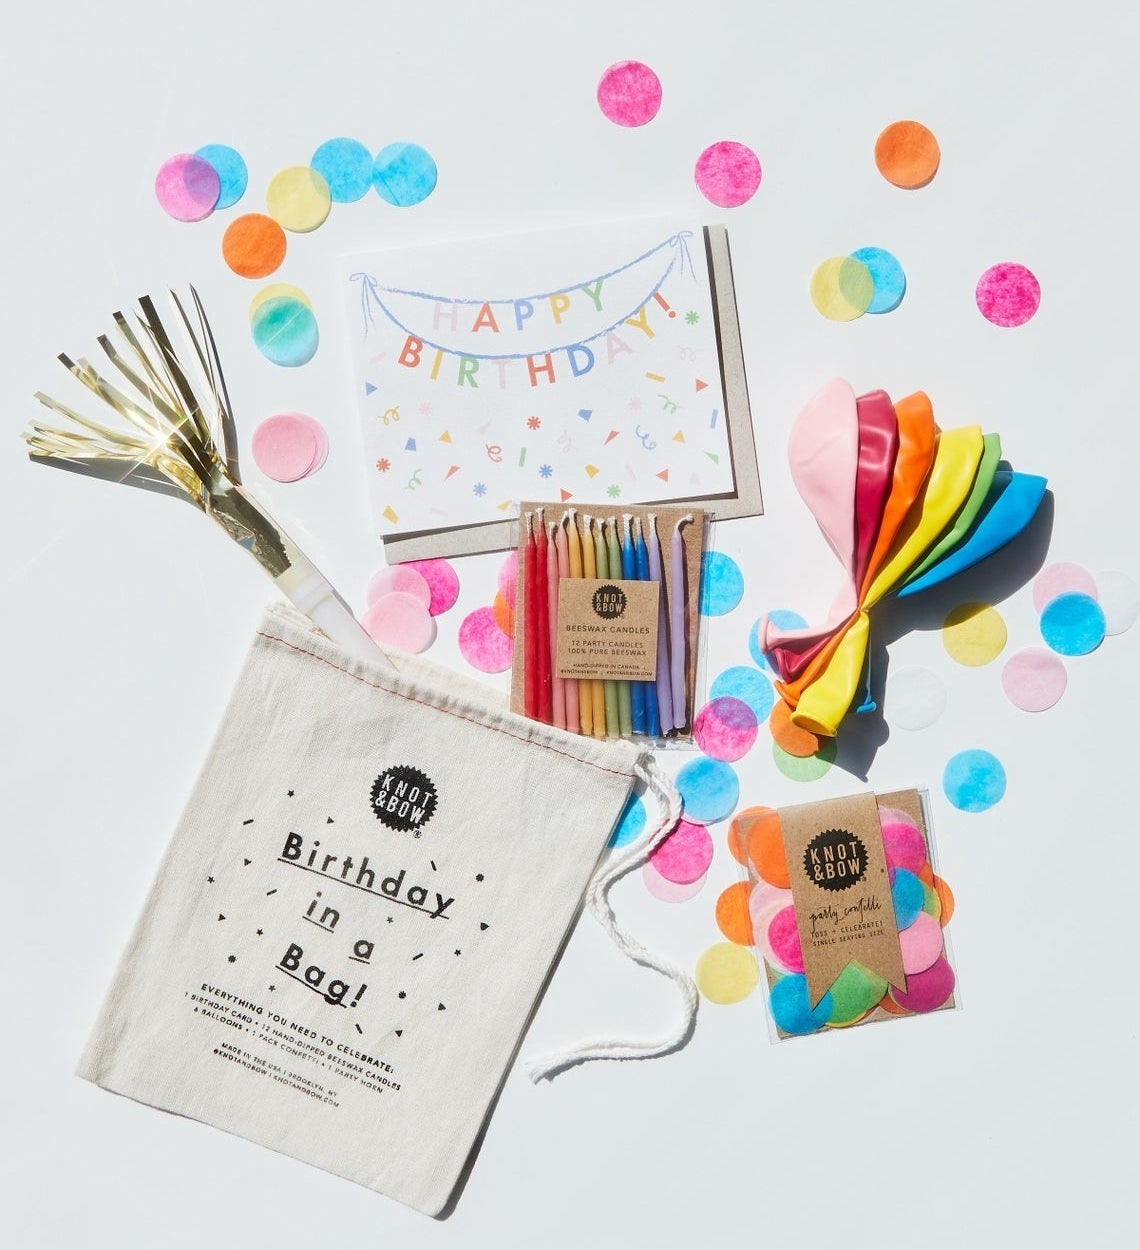 The various items that come with the birthday in a bag including the candles, balloons, card, confetti, and the bag